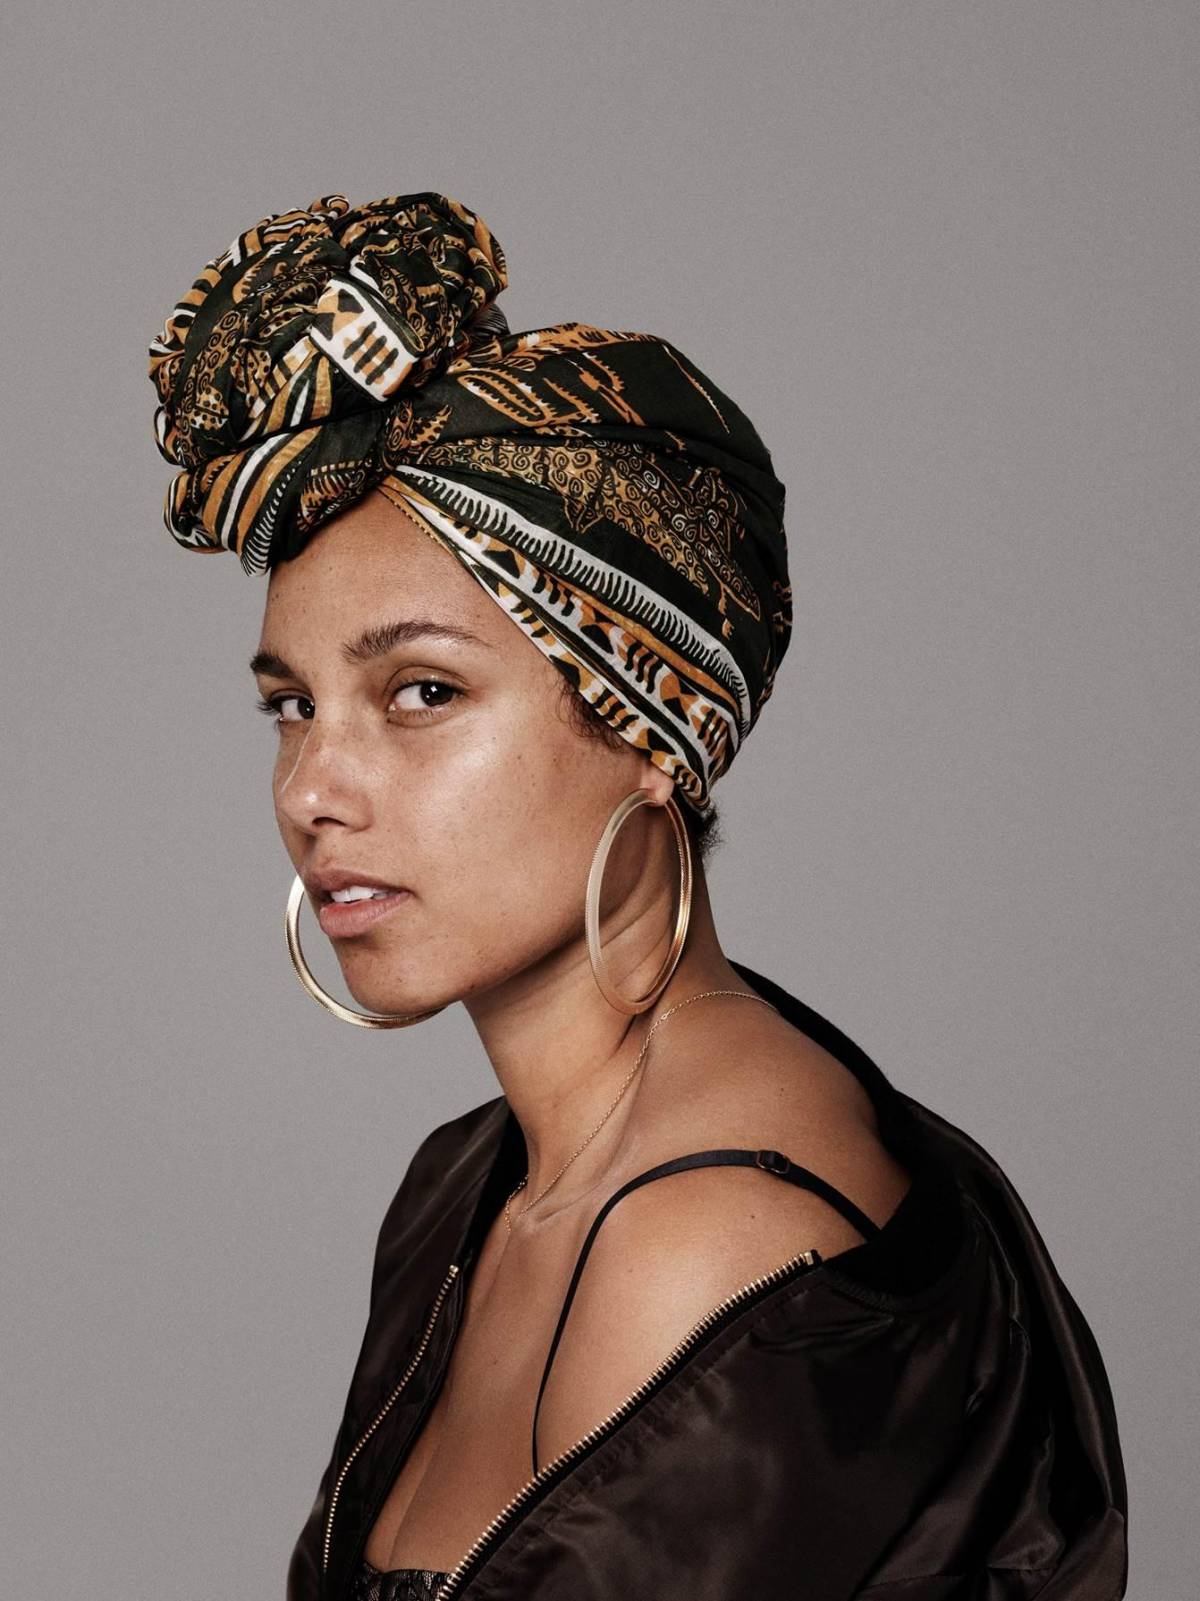 Alicia Keys | The Nept... Alicia Keys